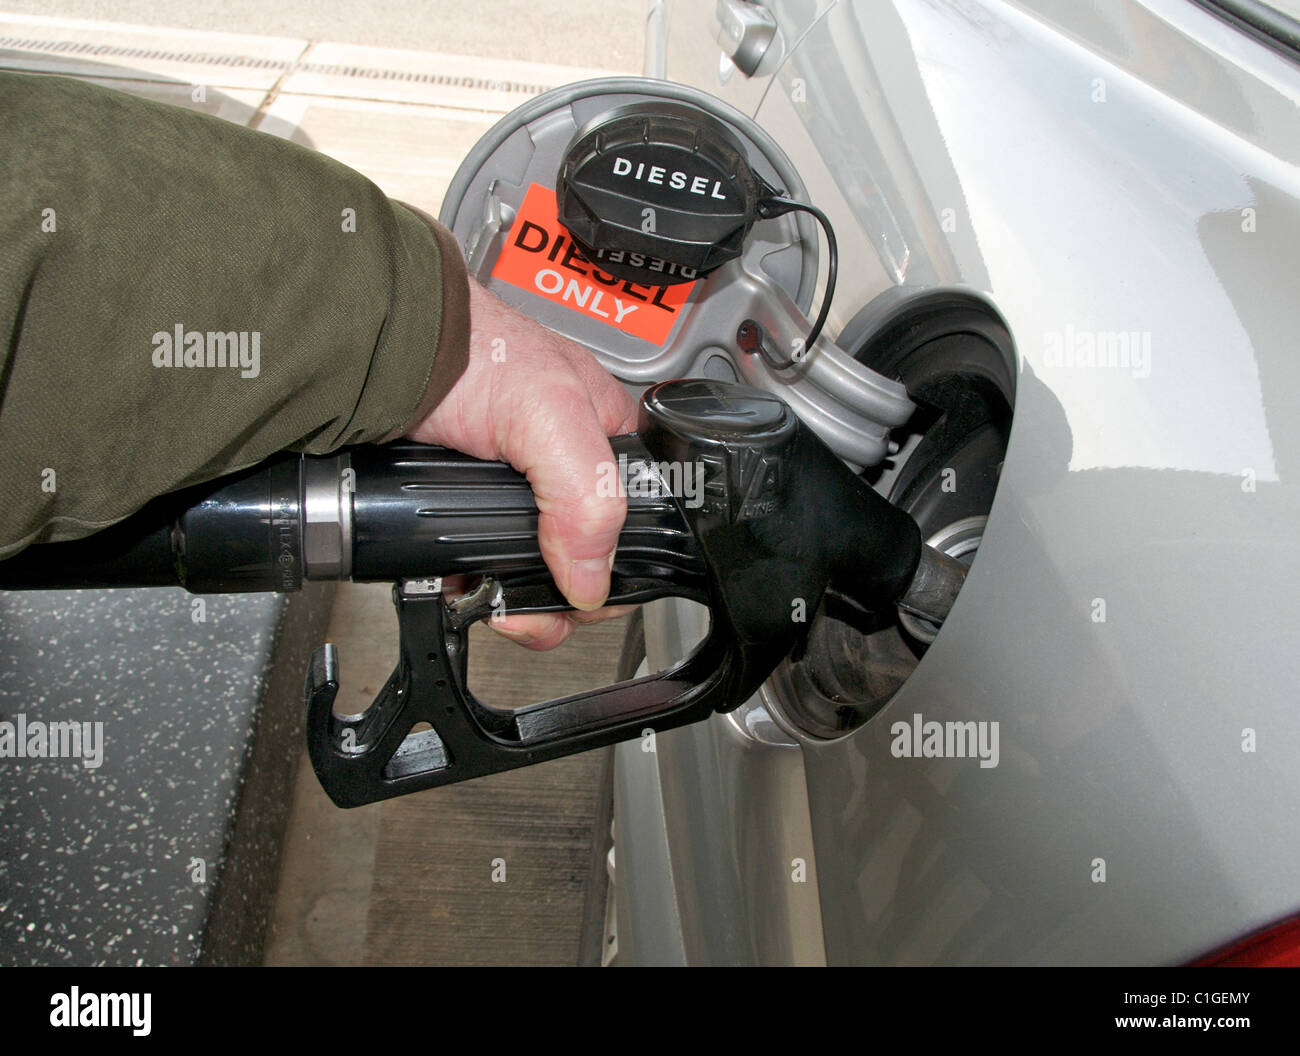 Images of fuel petrol diesel pumps nozzles on forecourt of garage filling station in UK Stock Photo